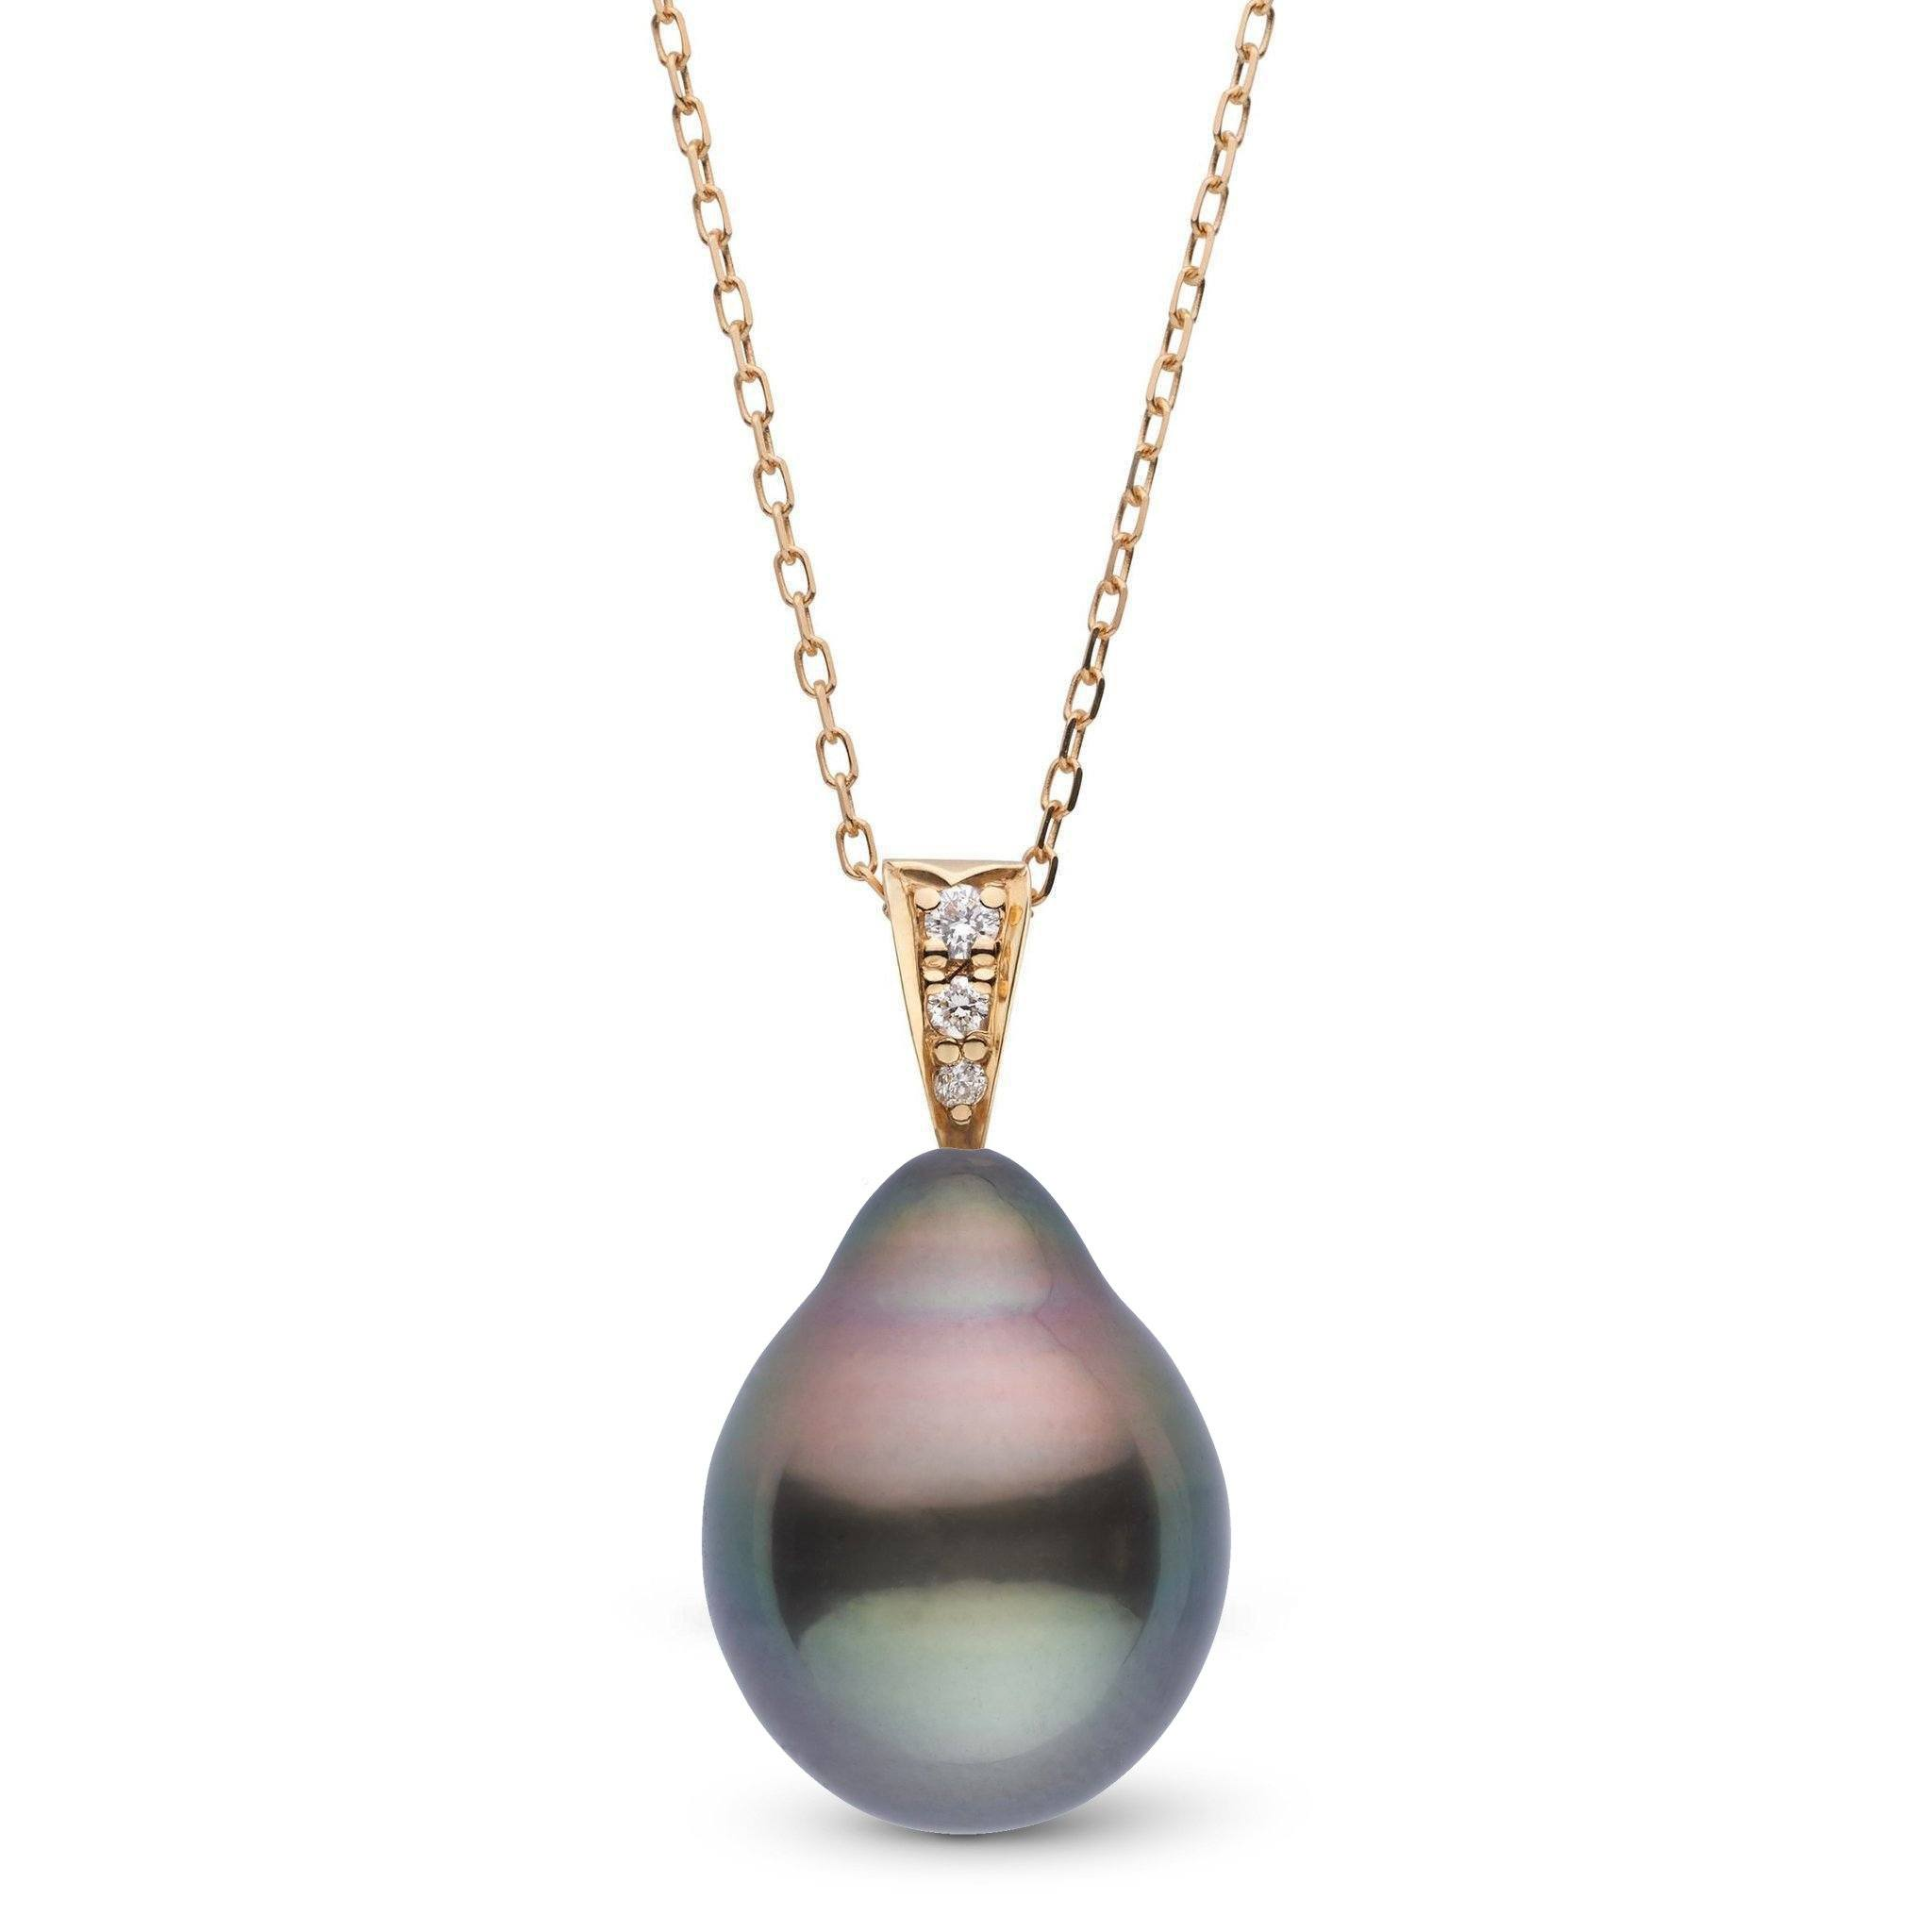 Desire Collection 11.0-12.0 mm Drop Tahitian Pearl & Diamond Pendant